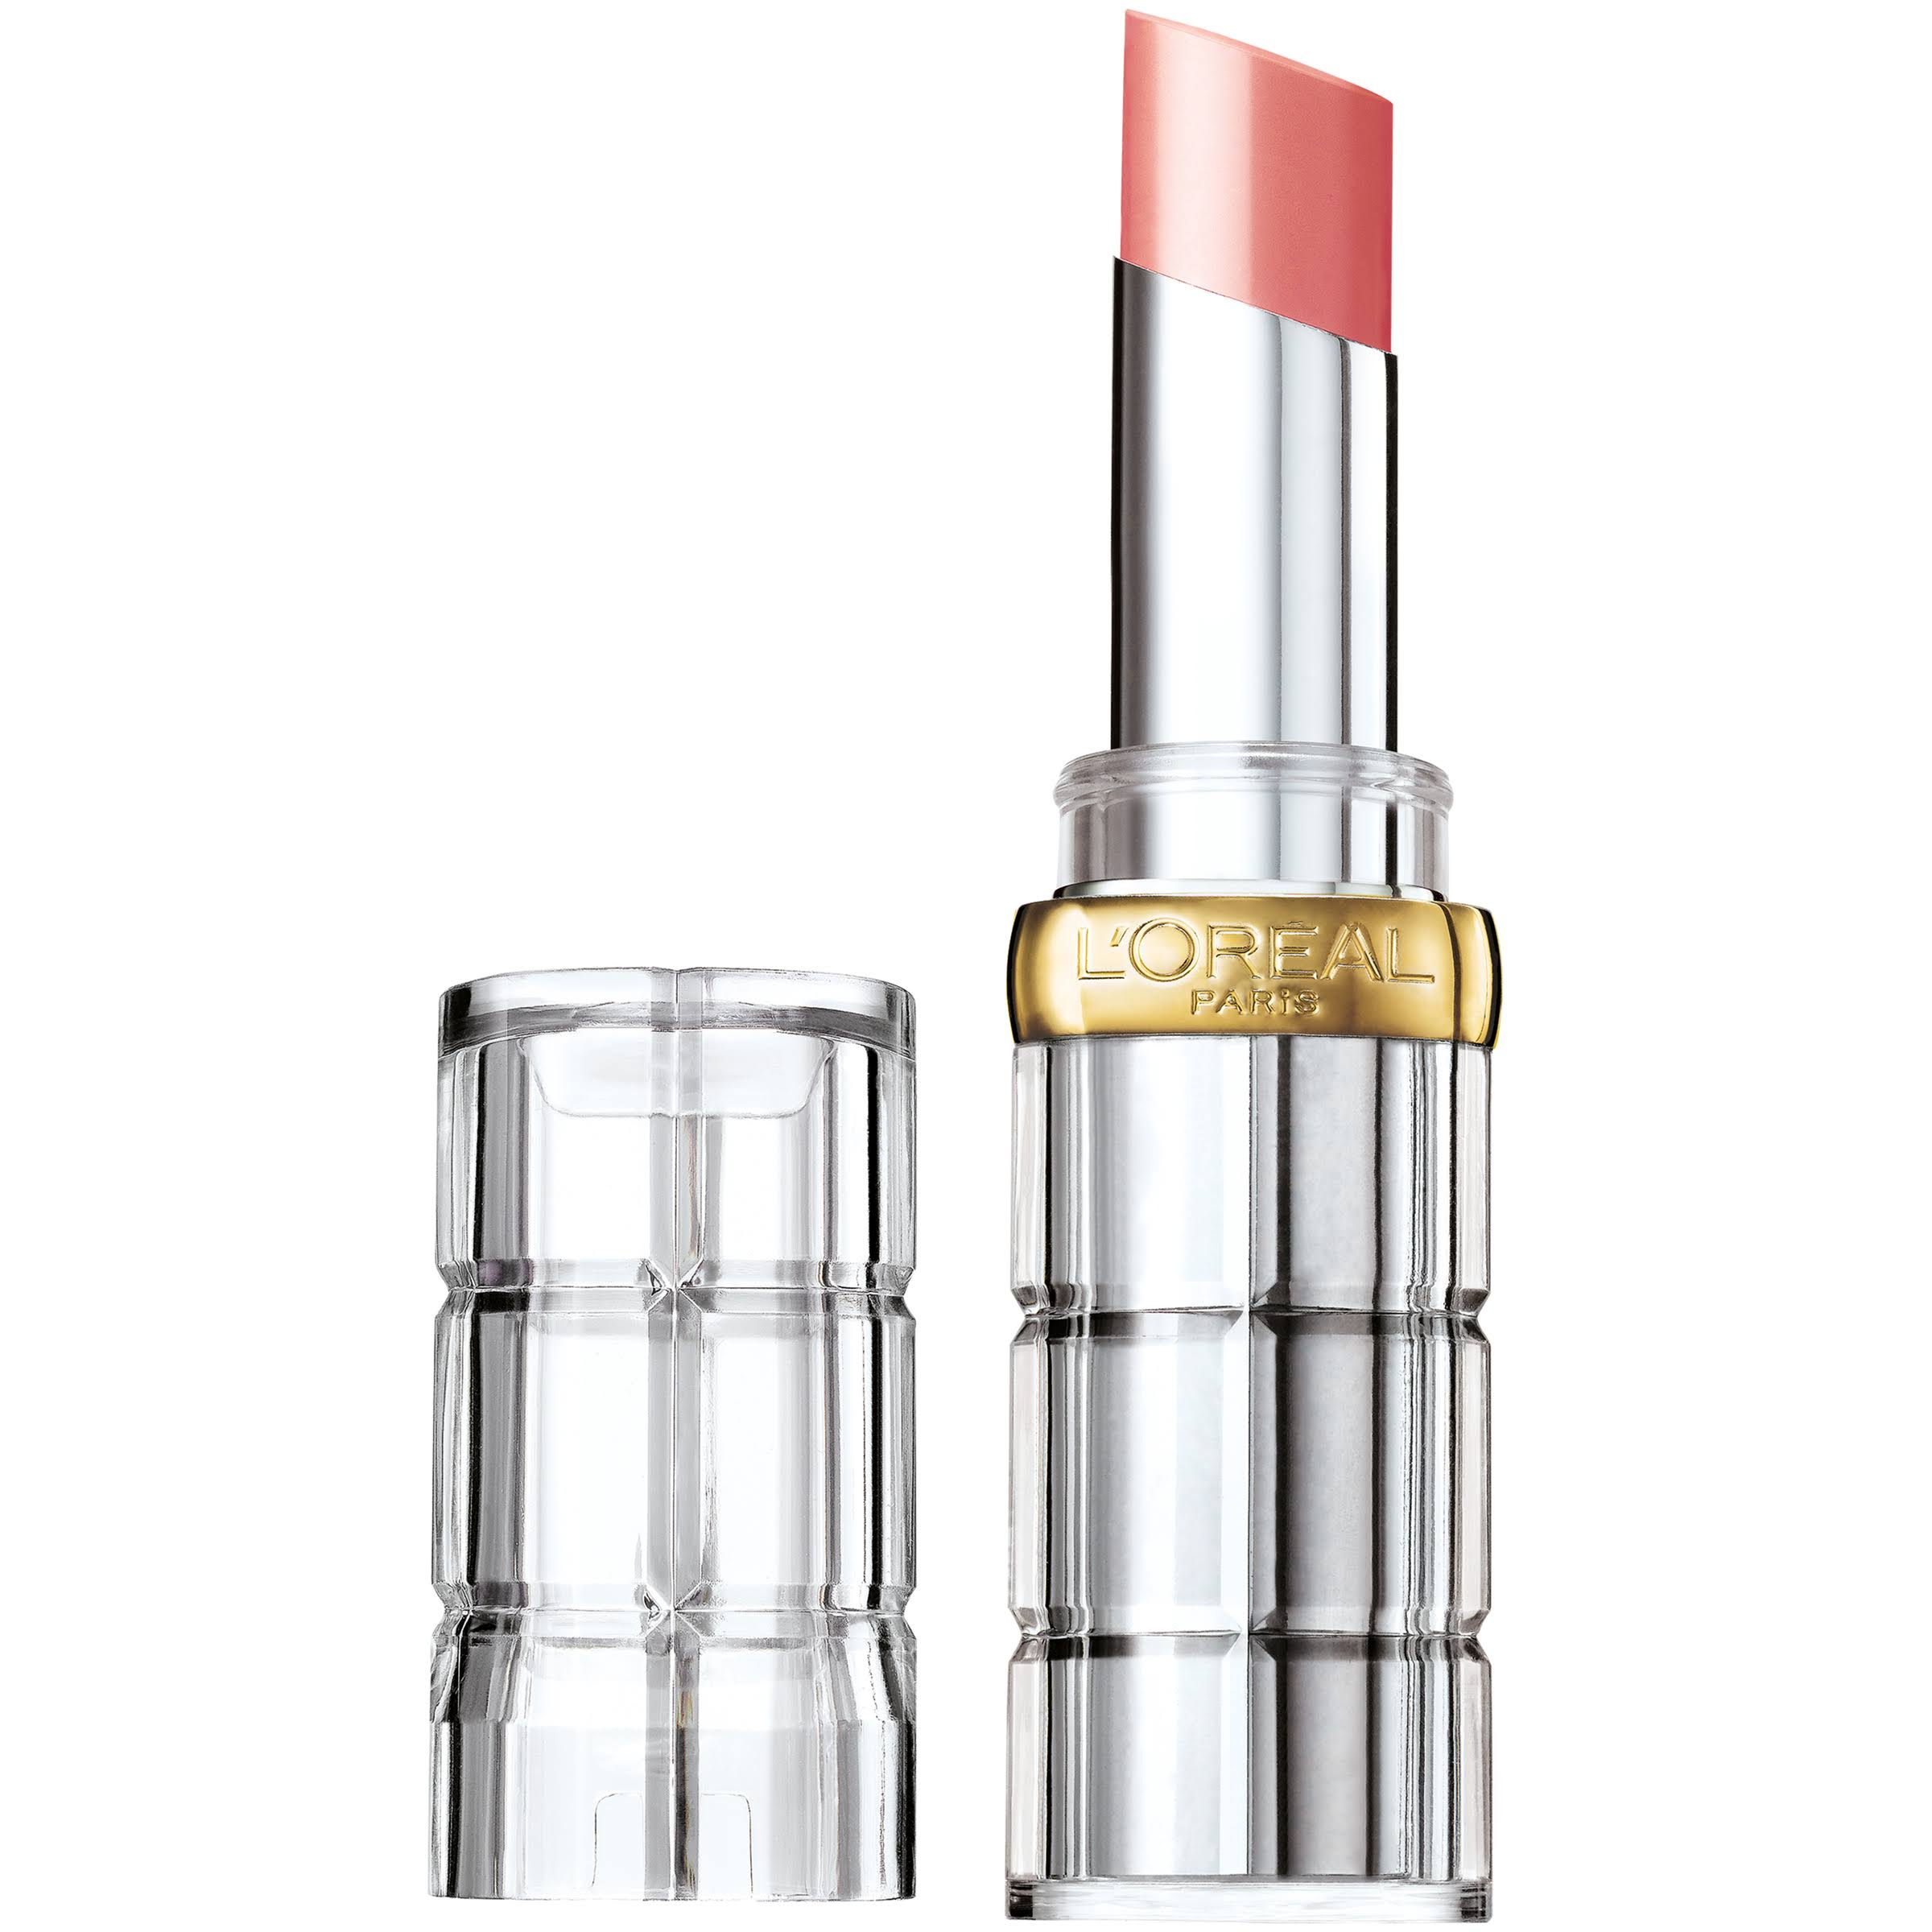 L'Oreal Paris Colour Riche Shine Lipstick - Sparkling Rose